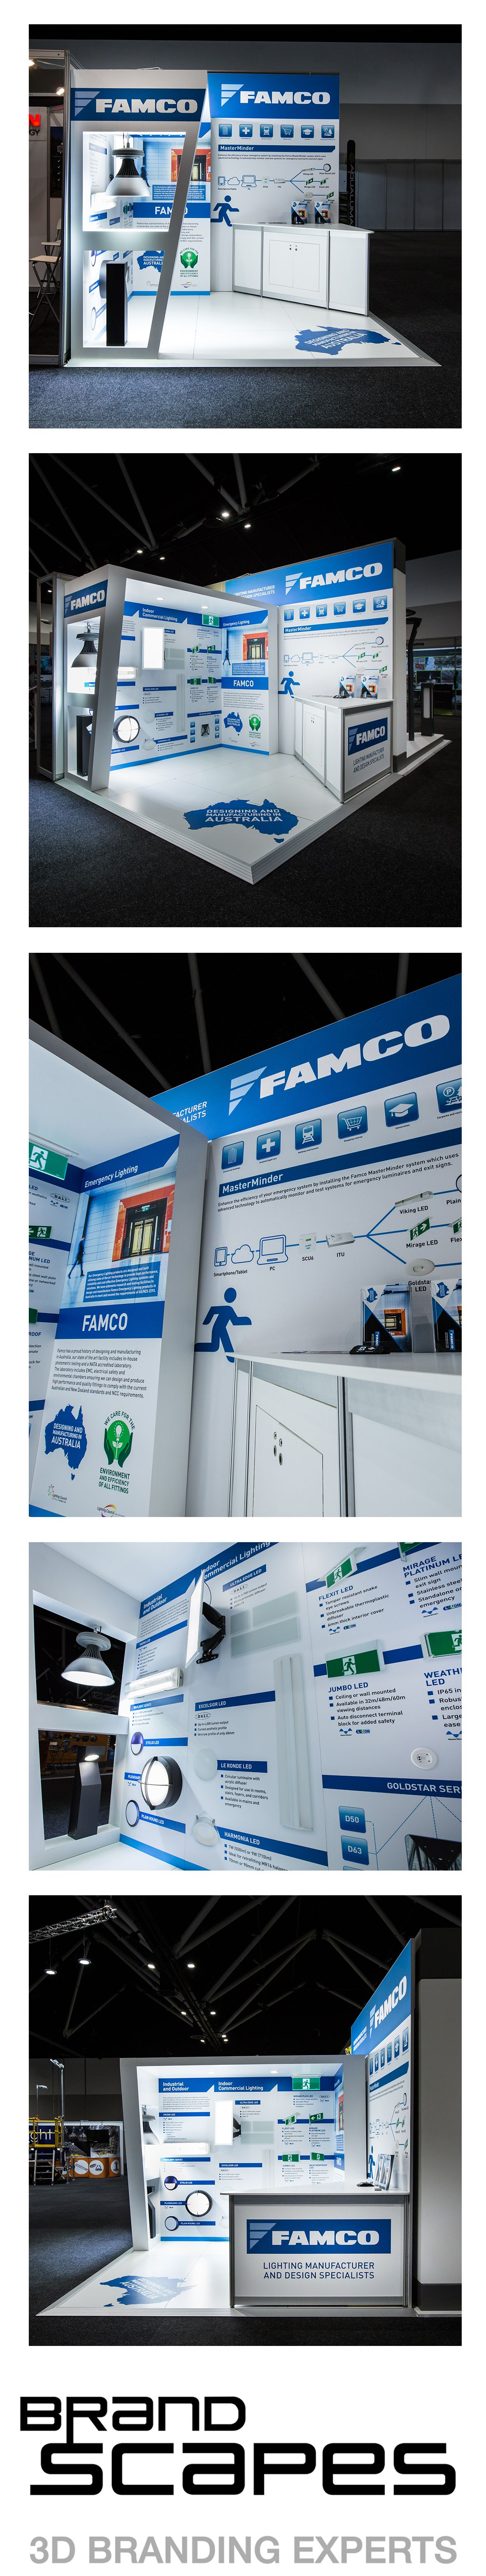 Exhibition Stand Builders Melbourne : Exhibition stand ideas tradeshow design and construction custom